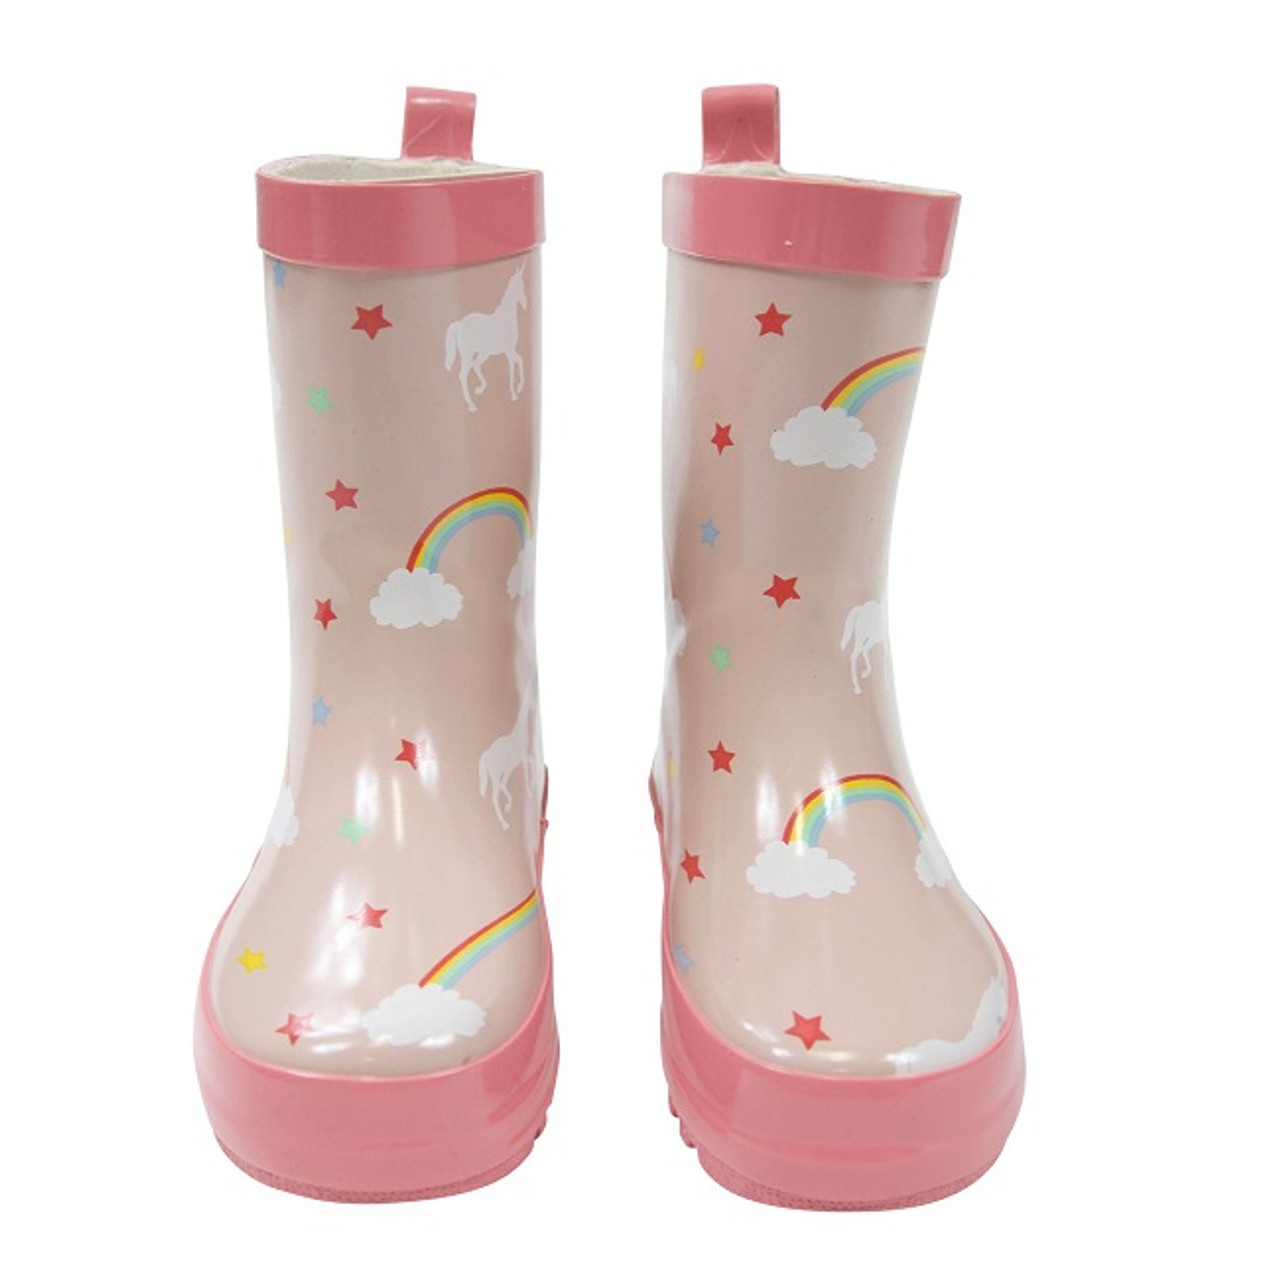 Korango Rainwear Gumboot - Unicorn at Baby Barn Discounts Perfect for outings on wet and rainy days. These waterproof and durable gumboots are fantastic addition to any rainy day outfit.